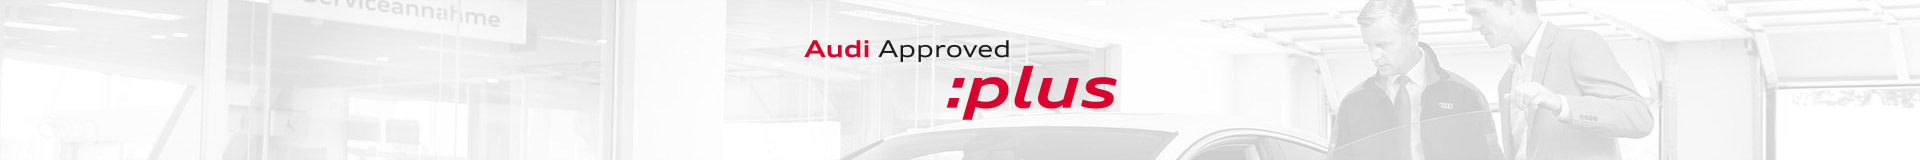 Approved Plus Audi